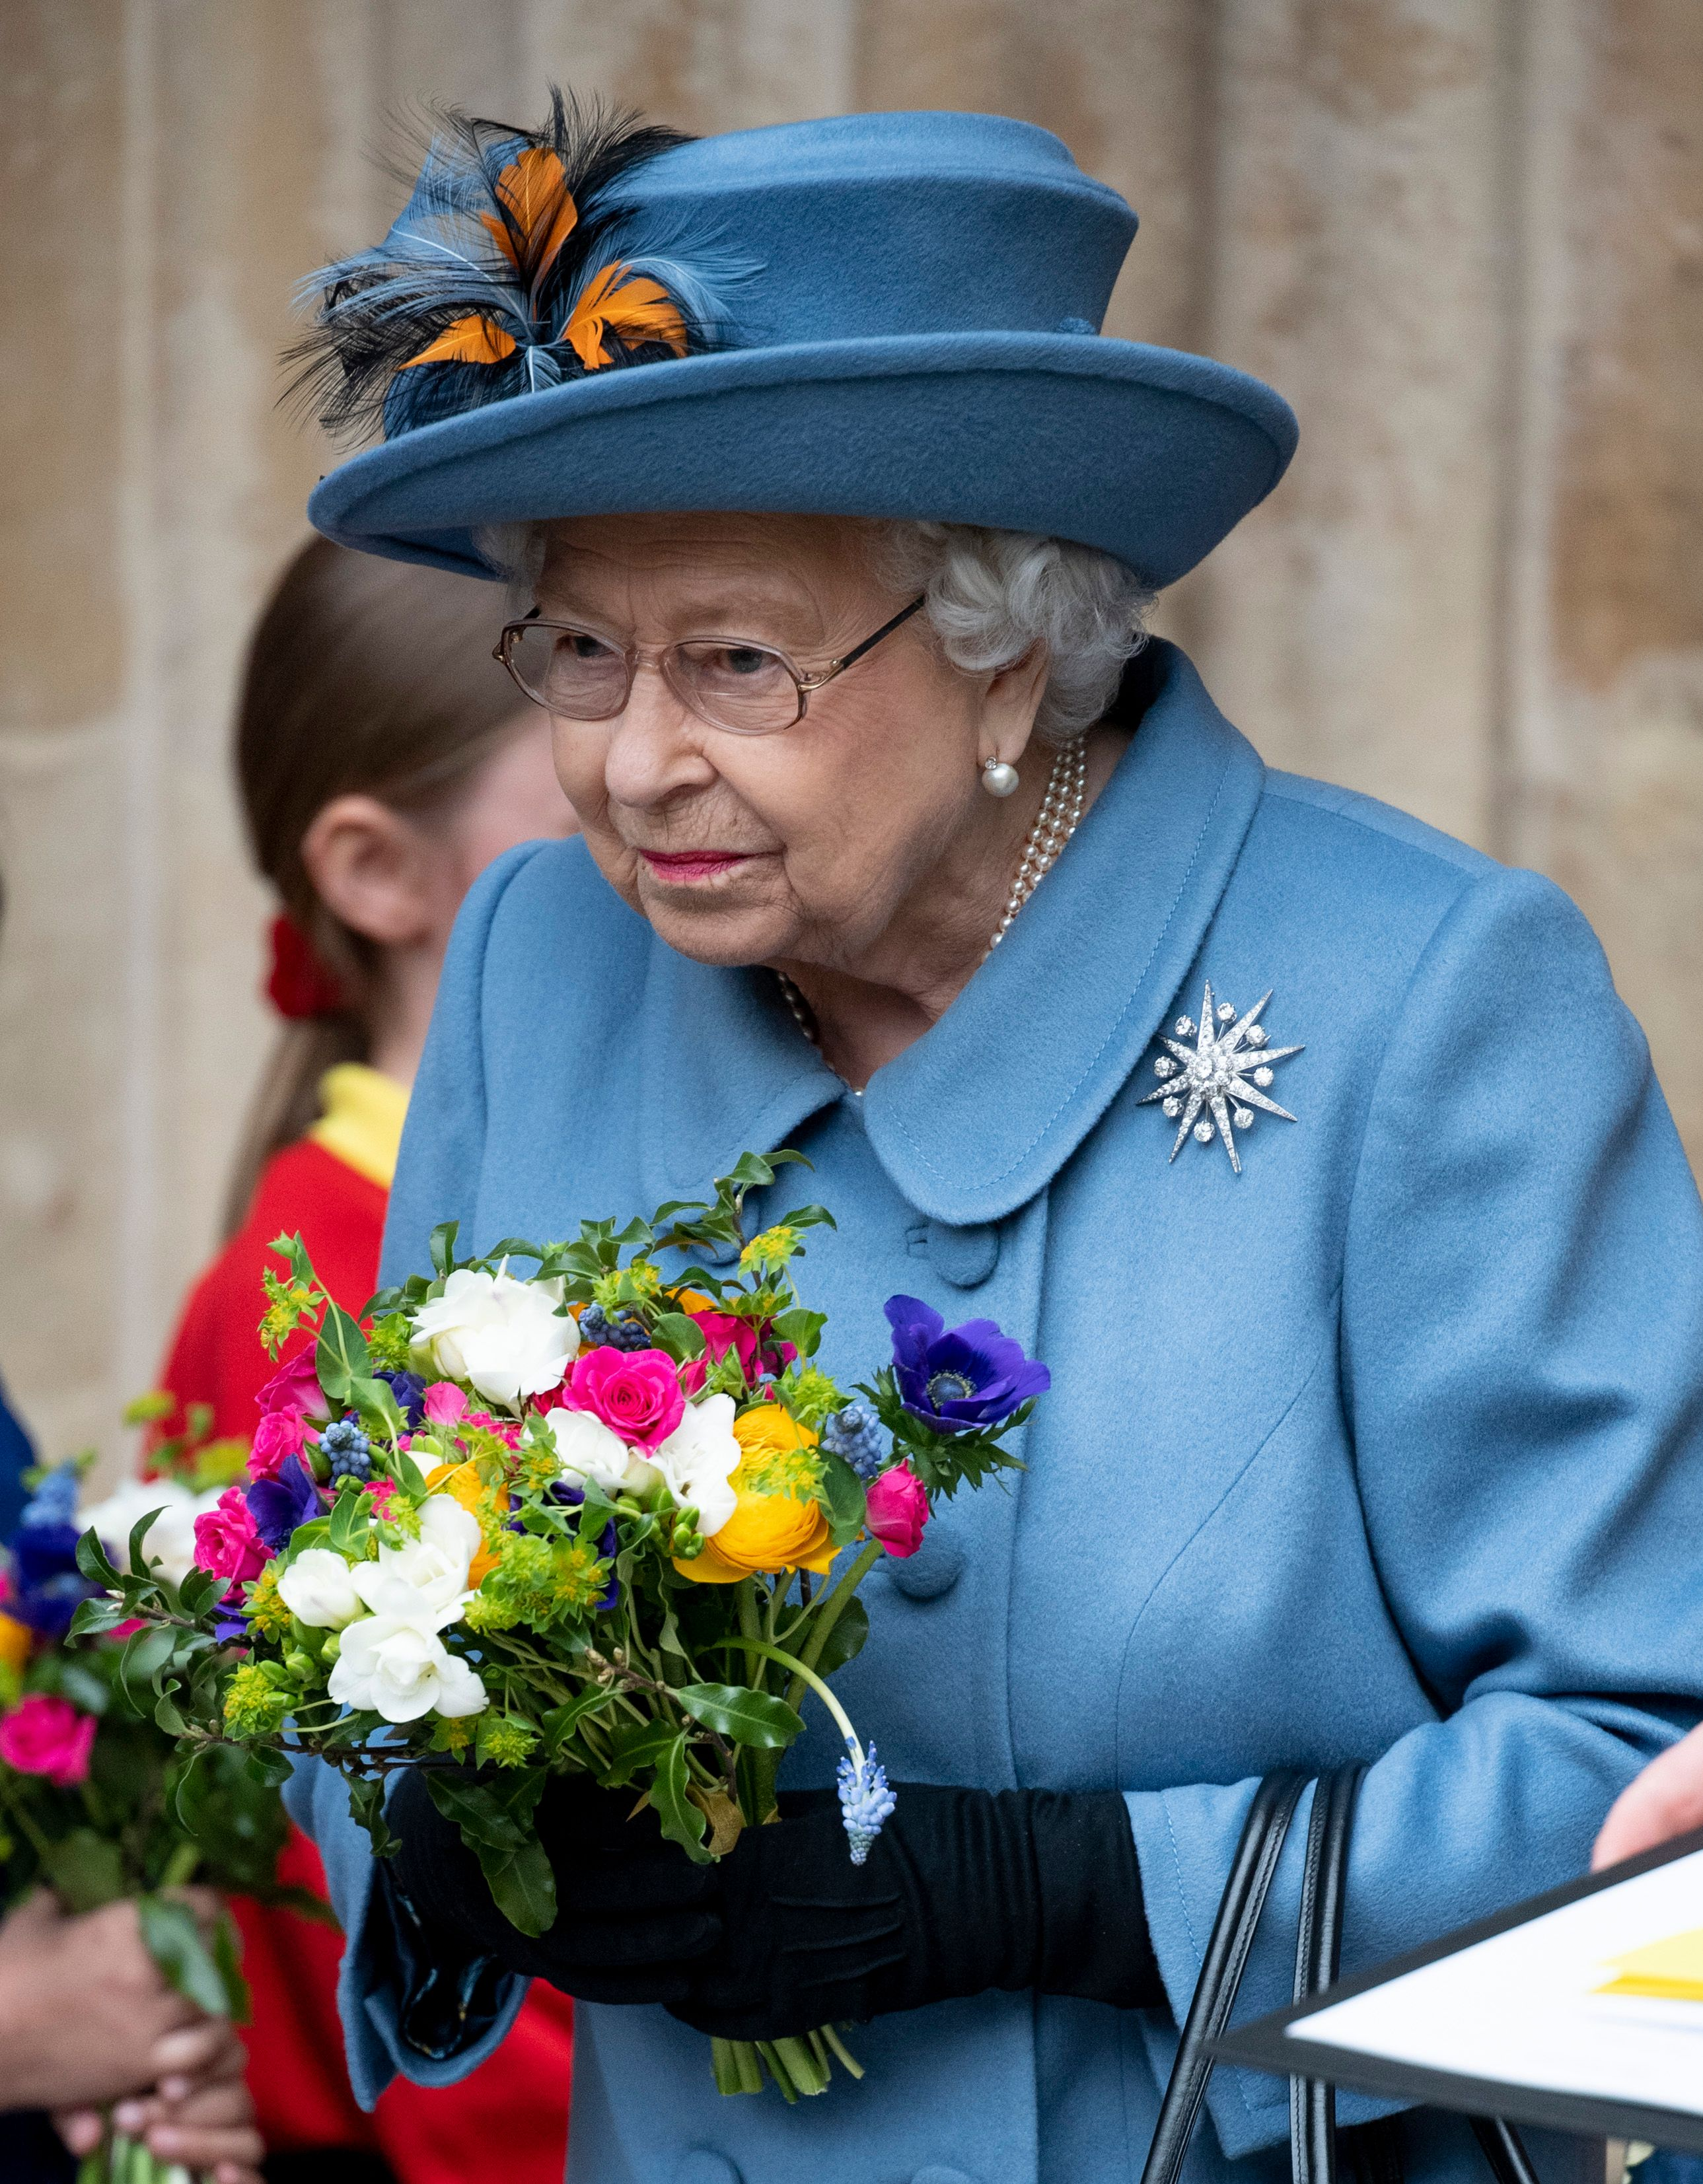 Queen Elizabeth II at the Commonwealth Day Service 2020 at Westminster Abbey on March 9, 2020 | Getty Images